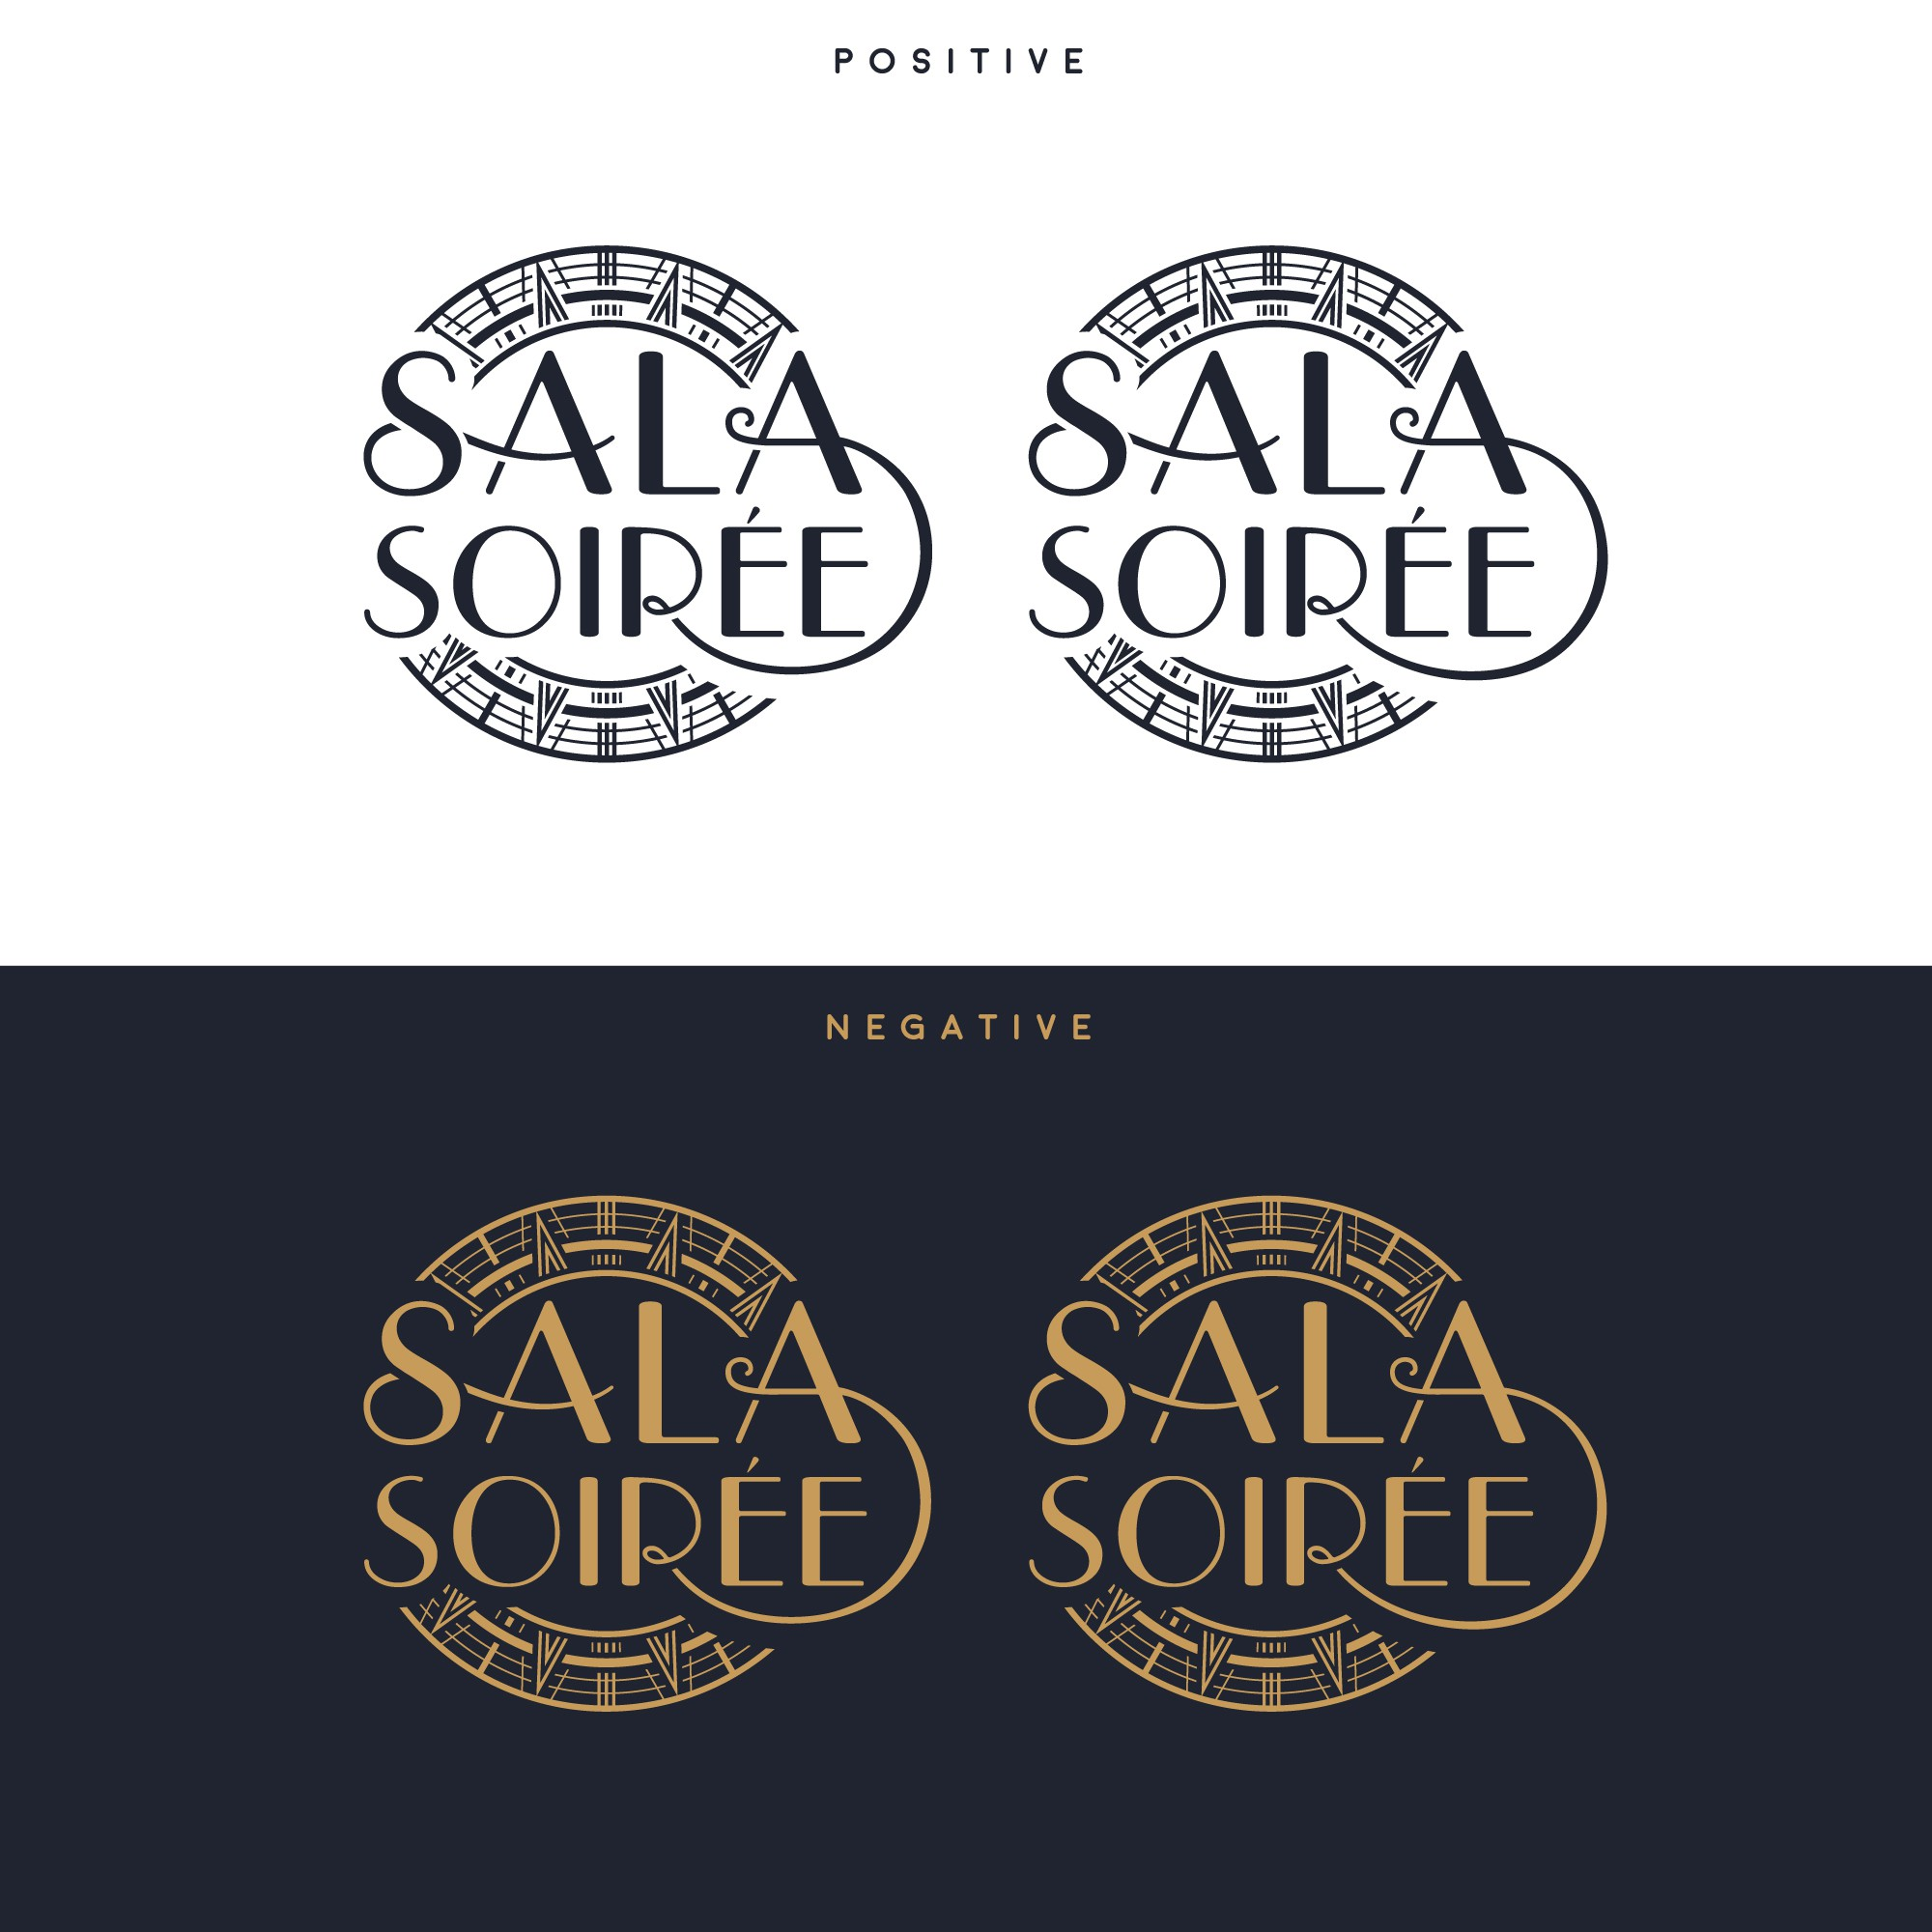 Sala Soiree- Salon style house parties for the modern traveler.